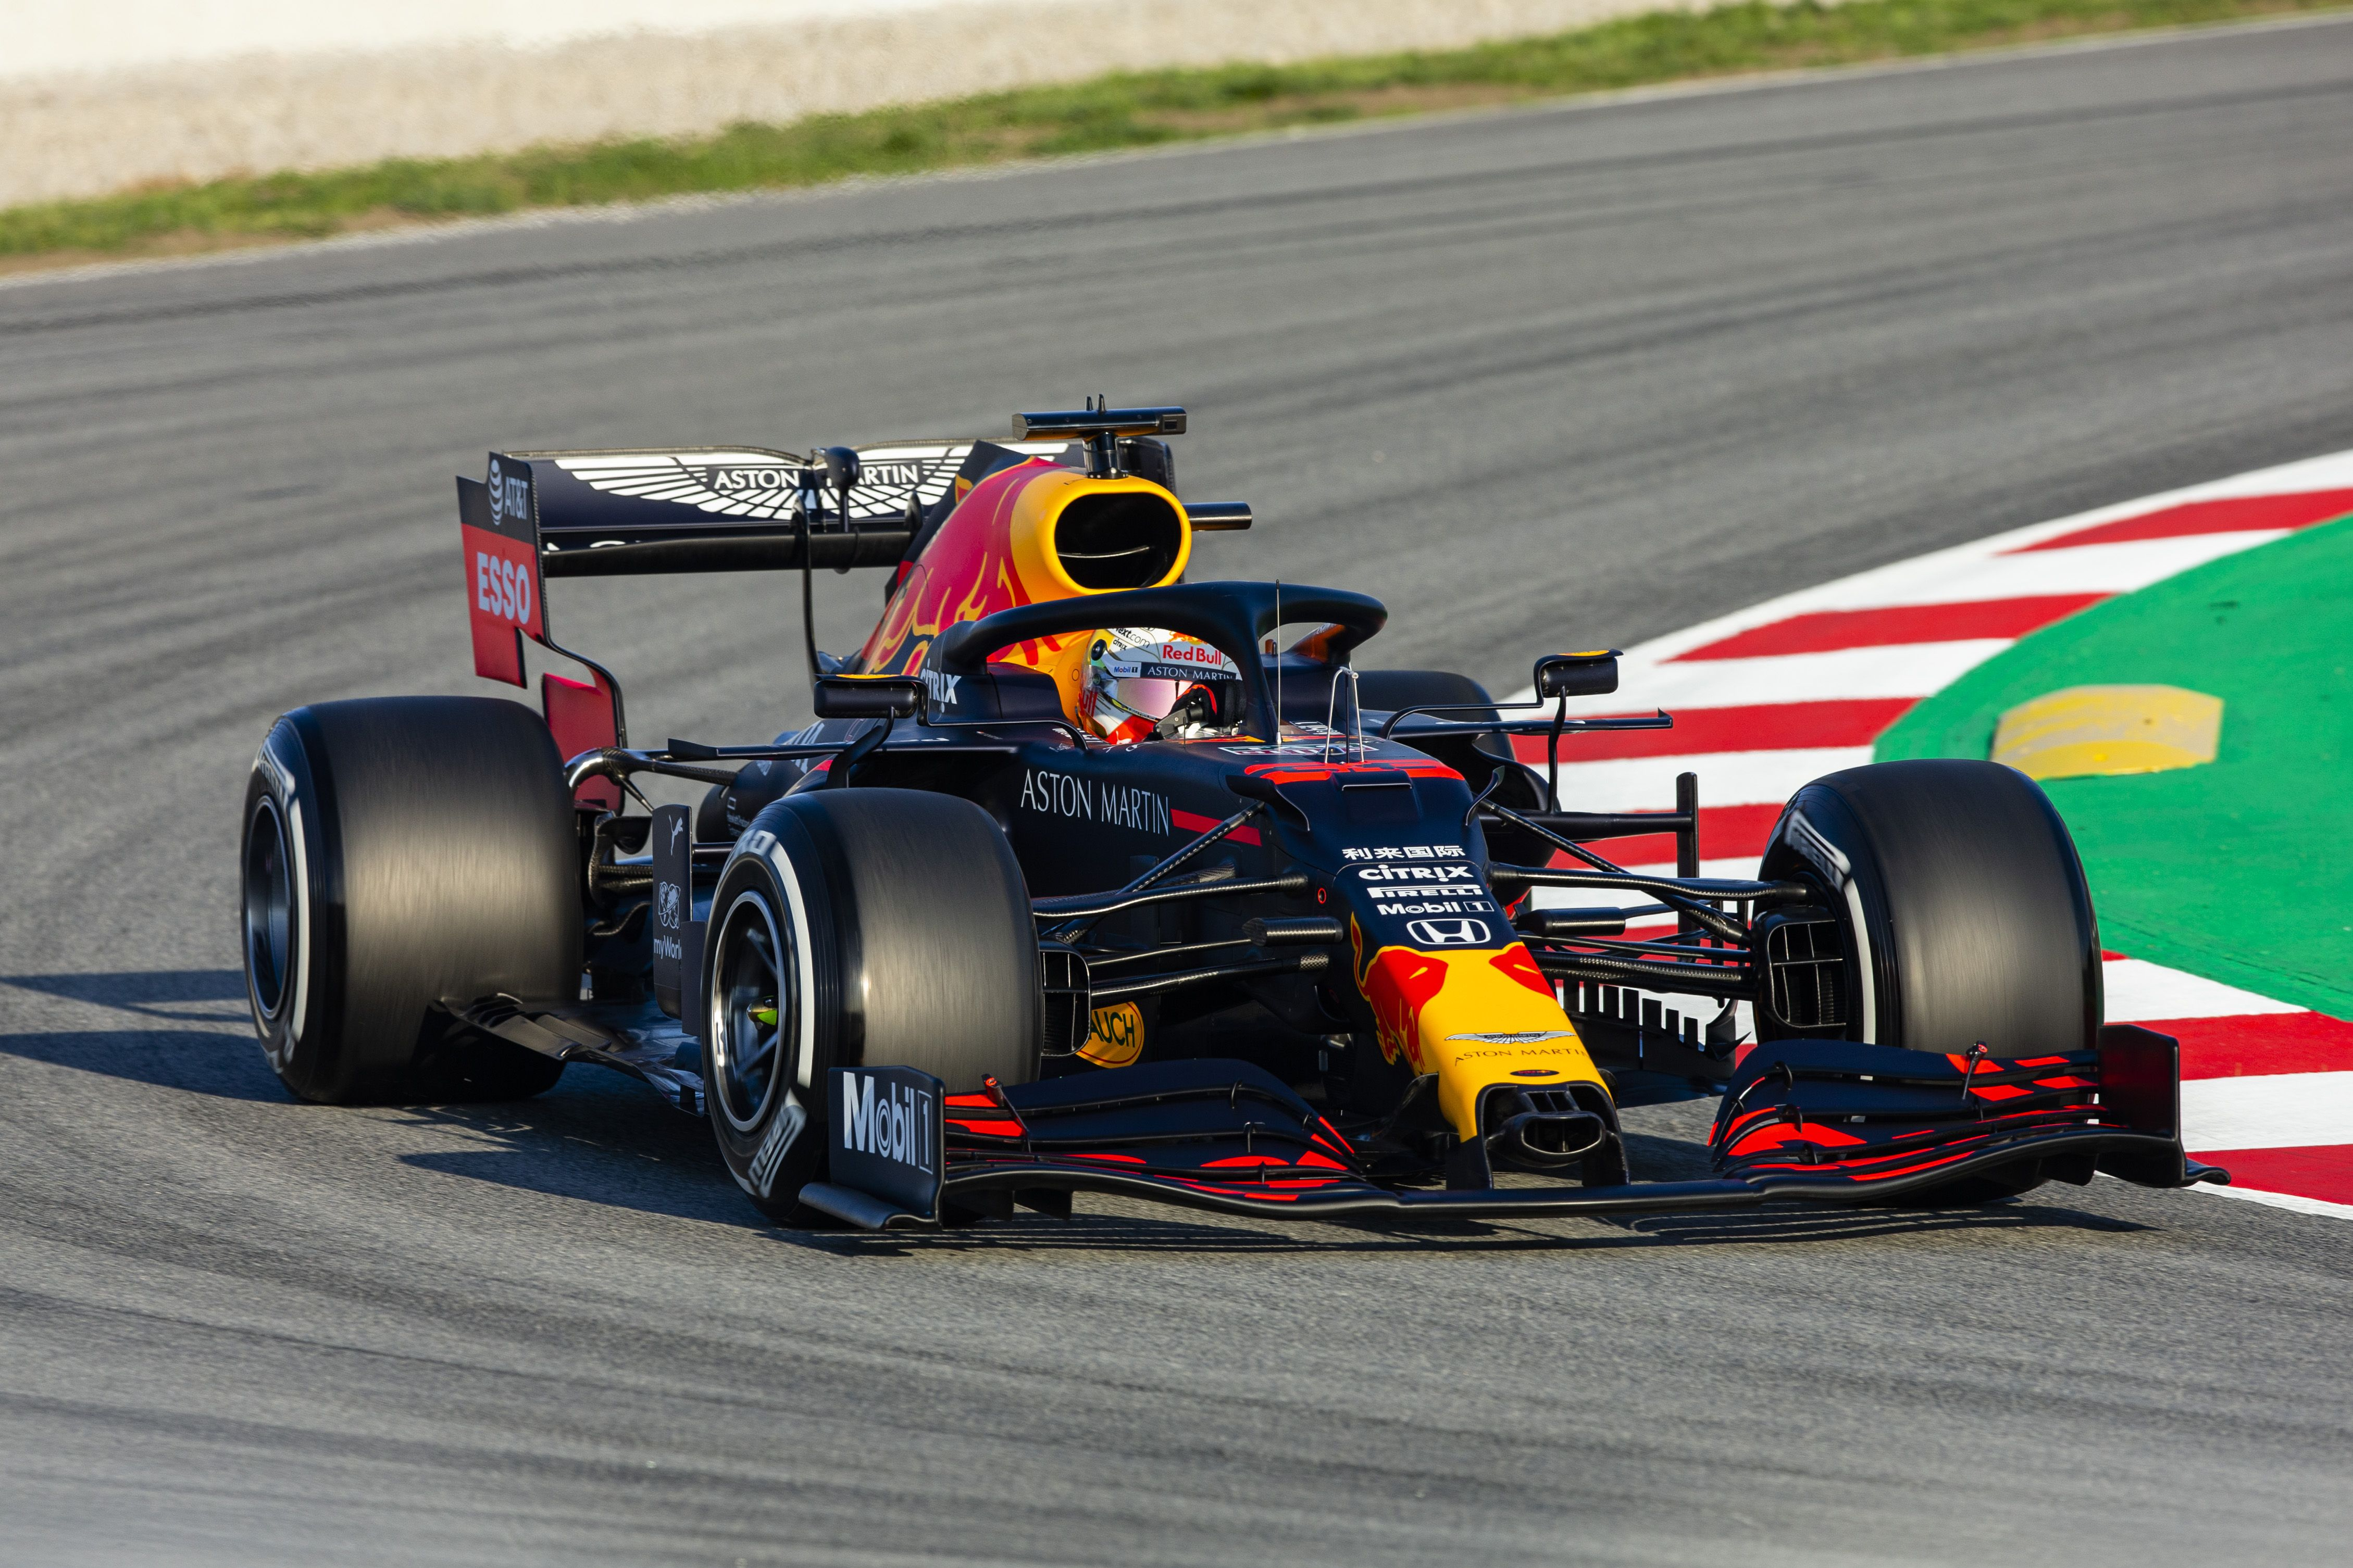 How Coronavirus And Season Uncertainty Forced Formula 1 To Push 2021 Regulations To 2022